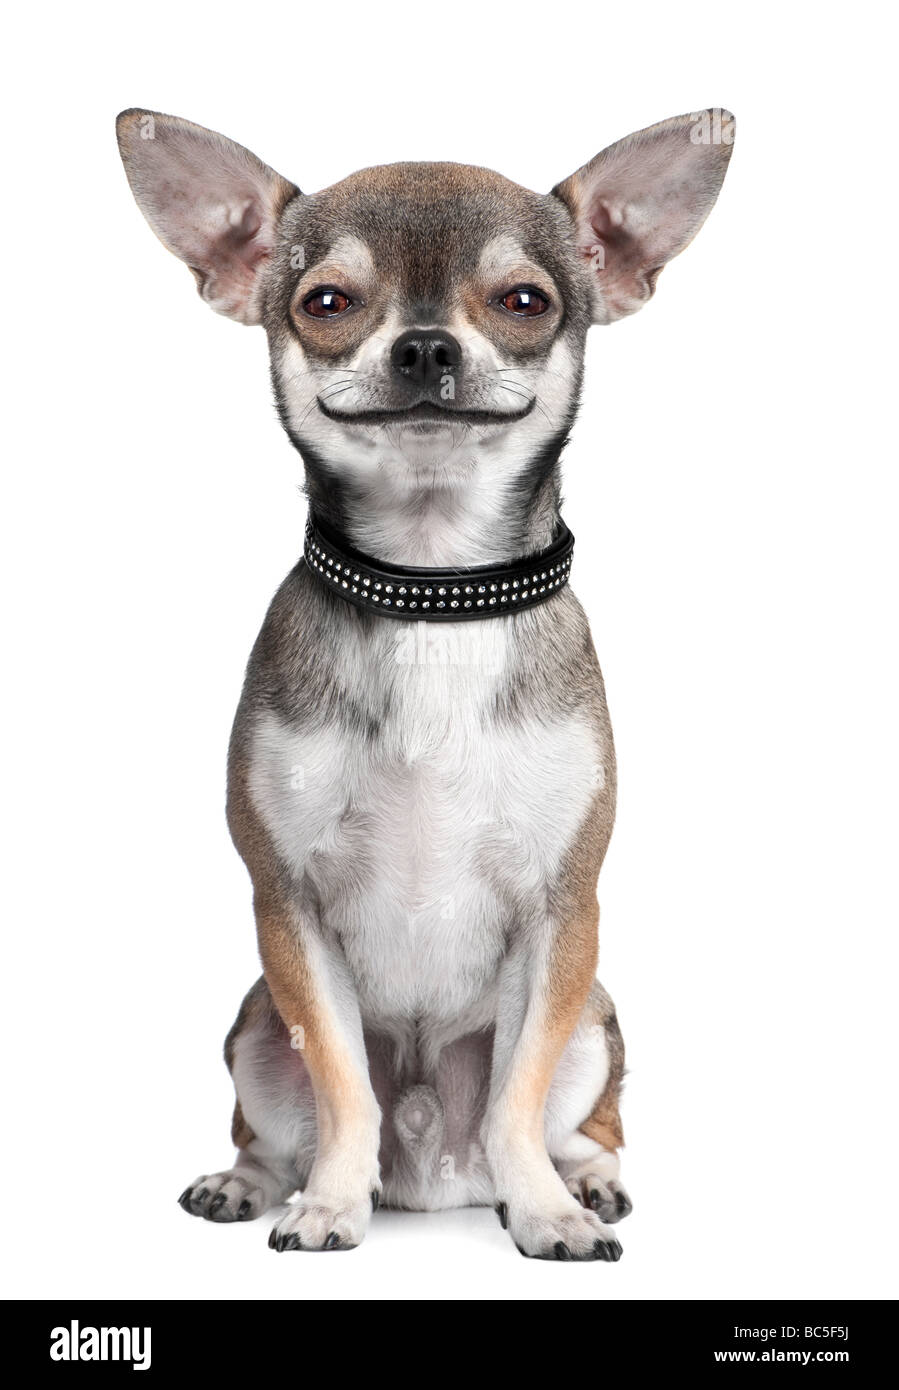 dog chihuahua looking at the camera smiling in front of a white background Digital enhancement - Stock Image